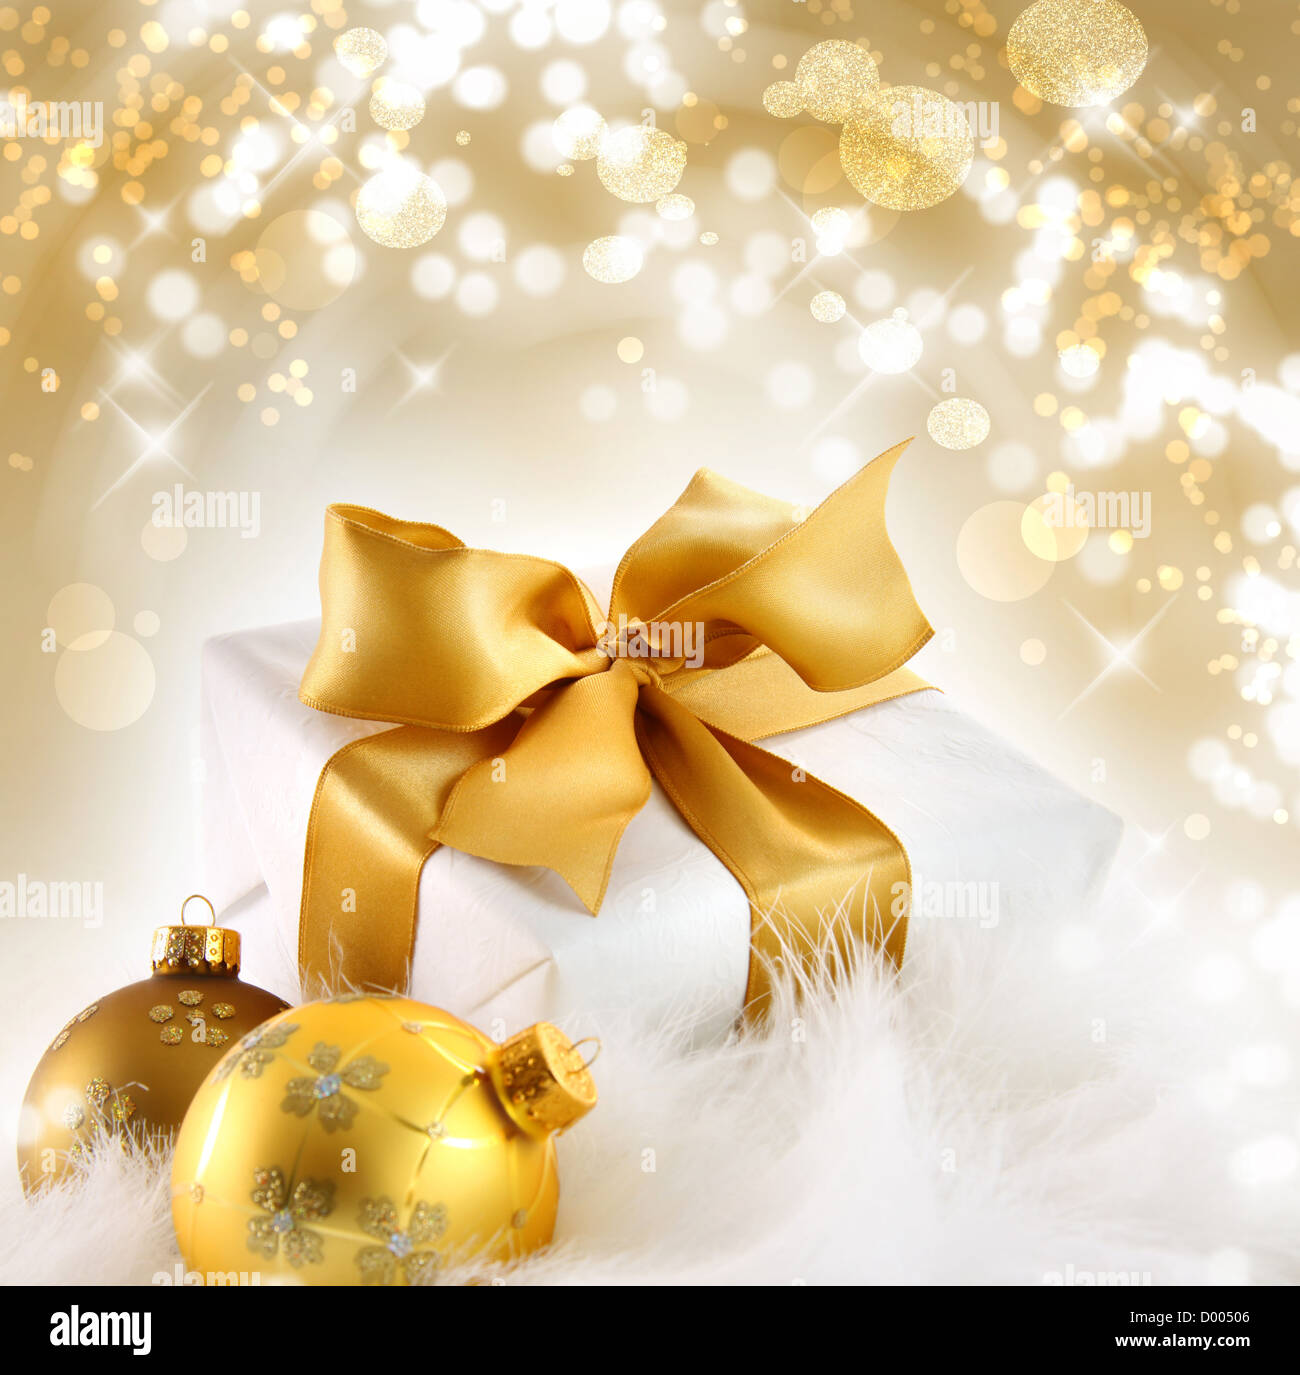 Gold ribboned gift with festive holiday background - Stock Image